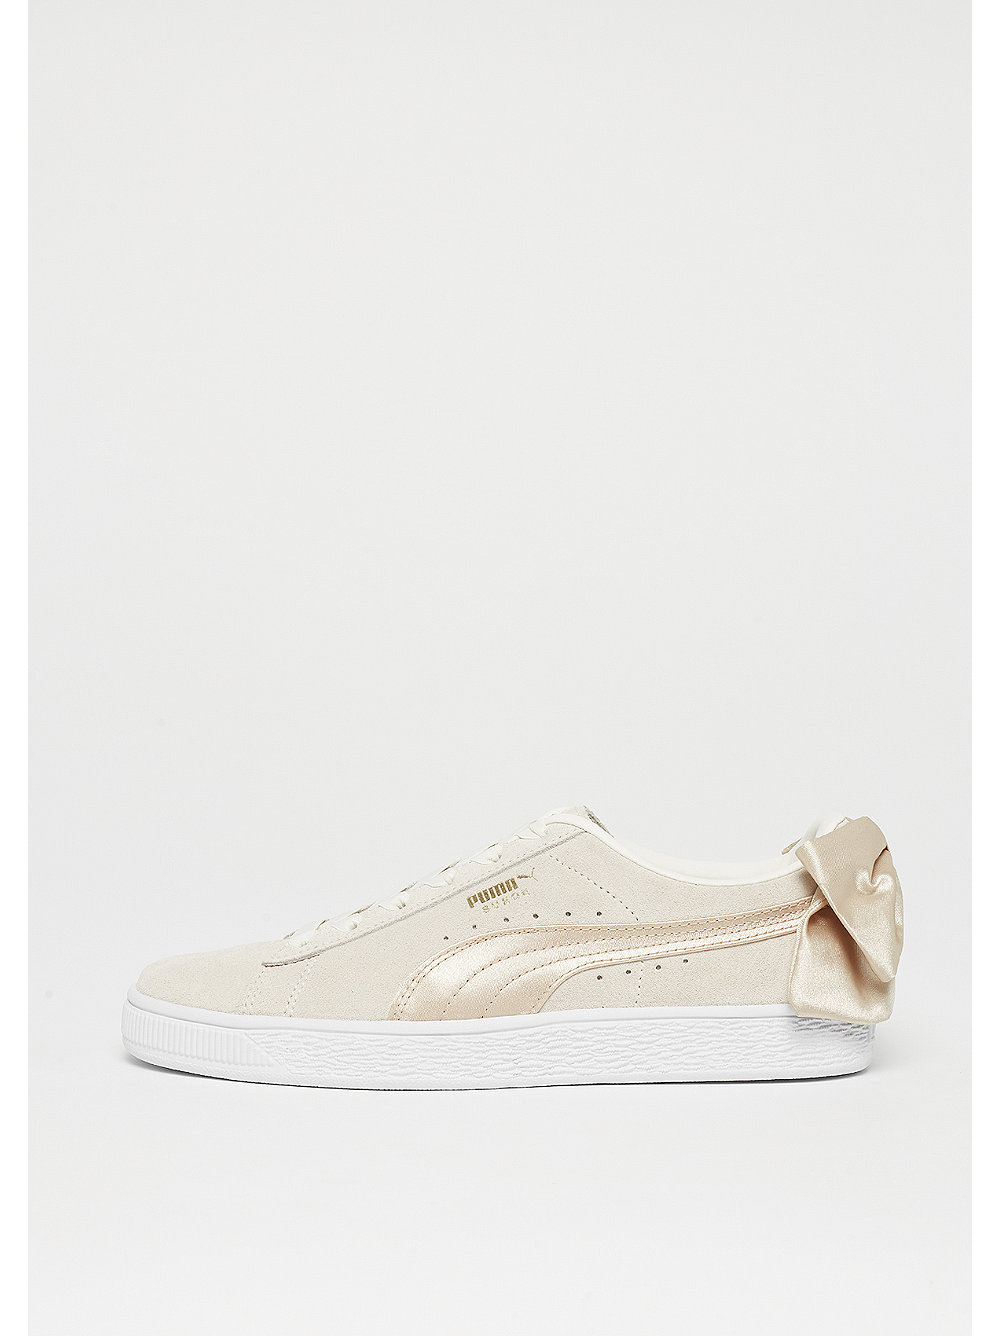 Suede Bow BSQT marshmallow-metallic gold